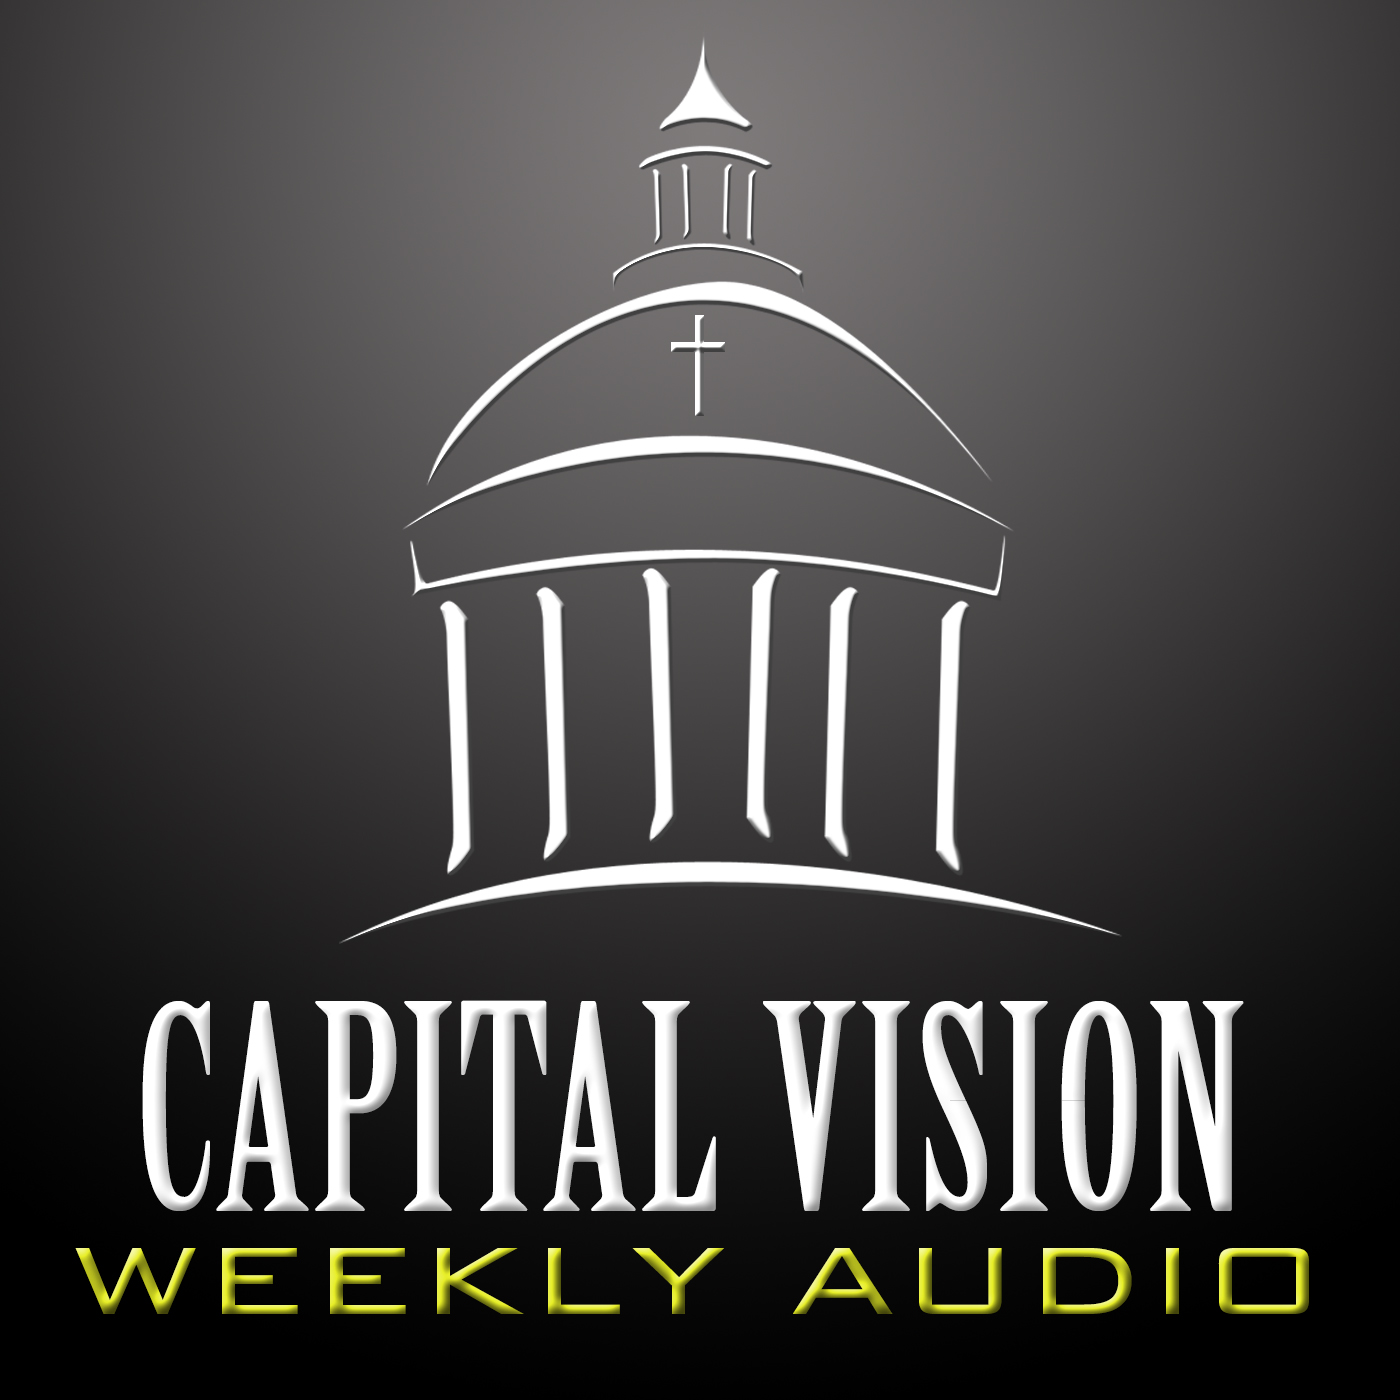 Capital Vision Weekly Audio